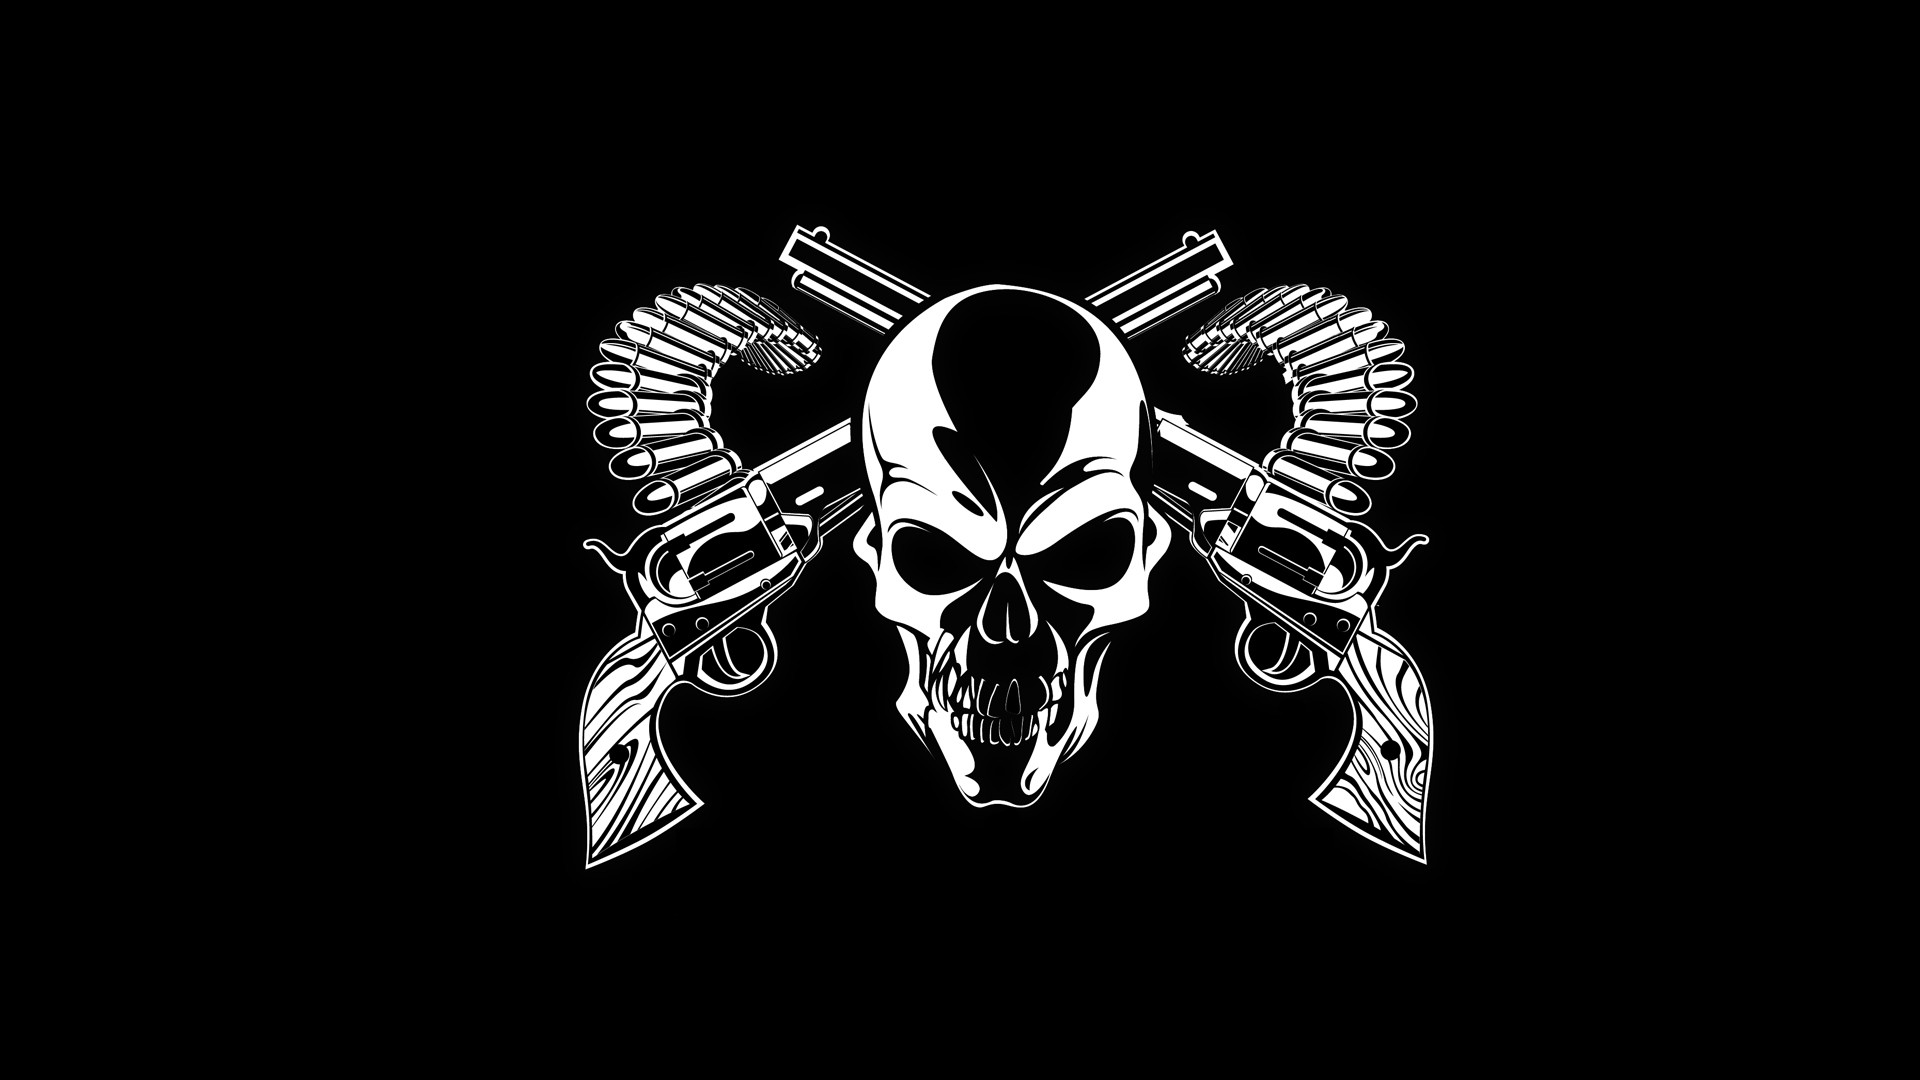 Free Download HD Pirate Skull Wallpapers for Desktop 1920×1080 Pirate  Wallpaper (47 Wallpapers)   Adorable Wallpapers   Desktop   Pinterest    Wallpaper and …